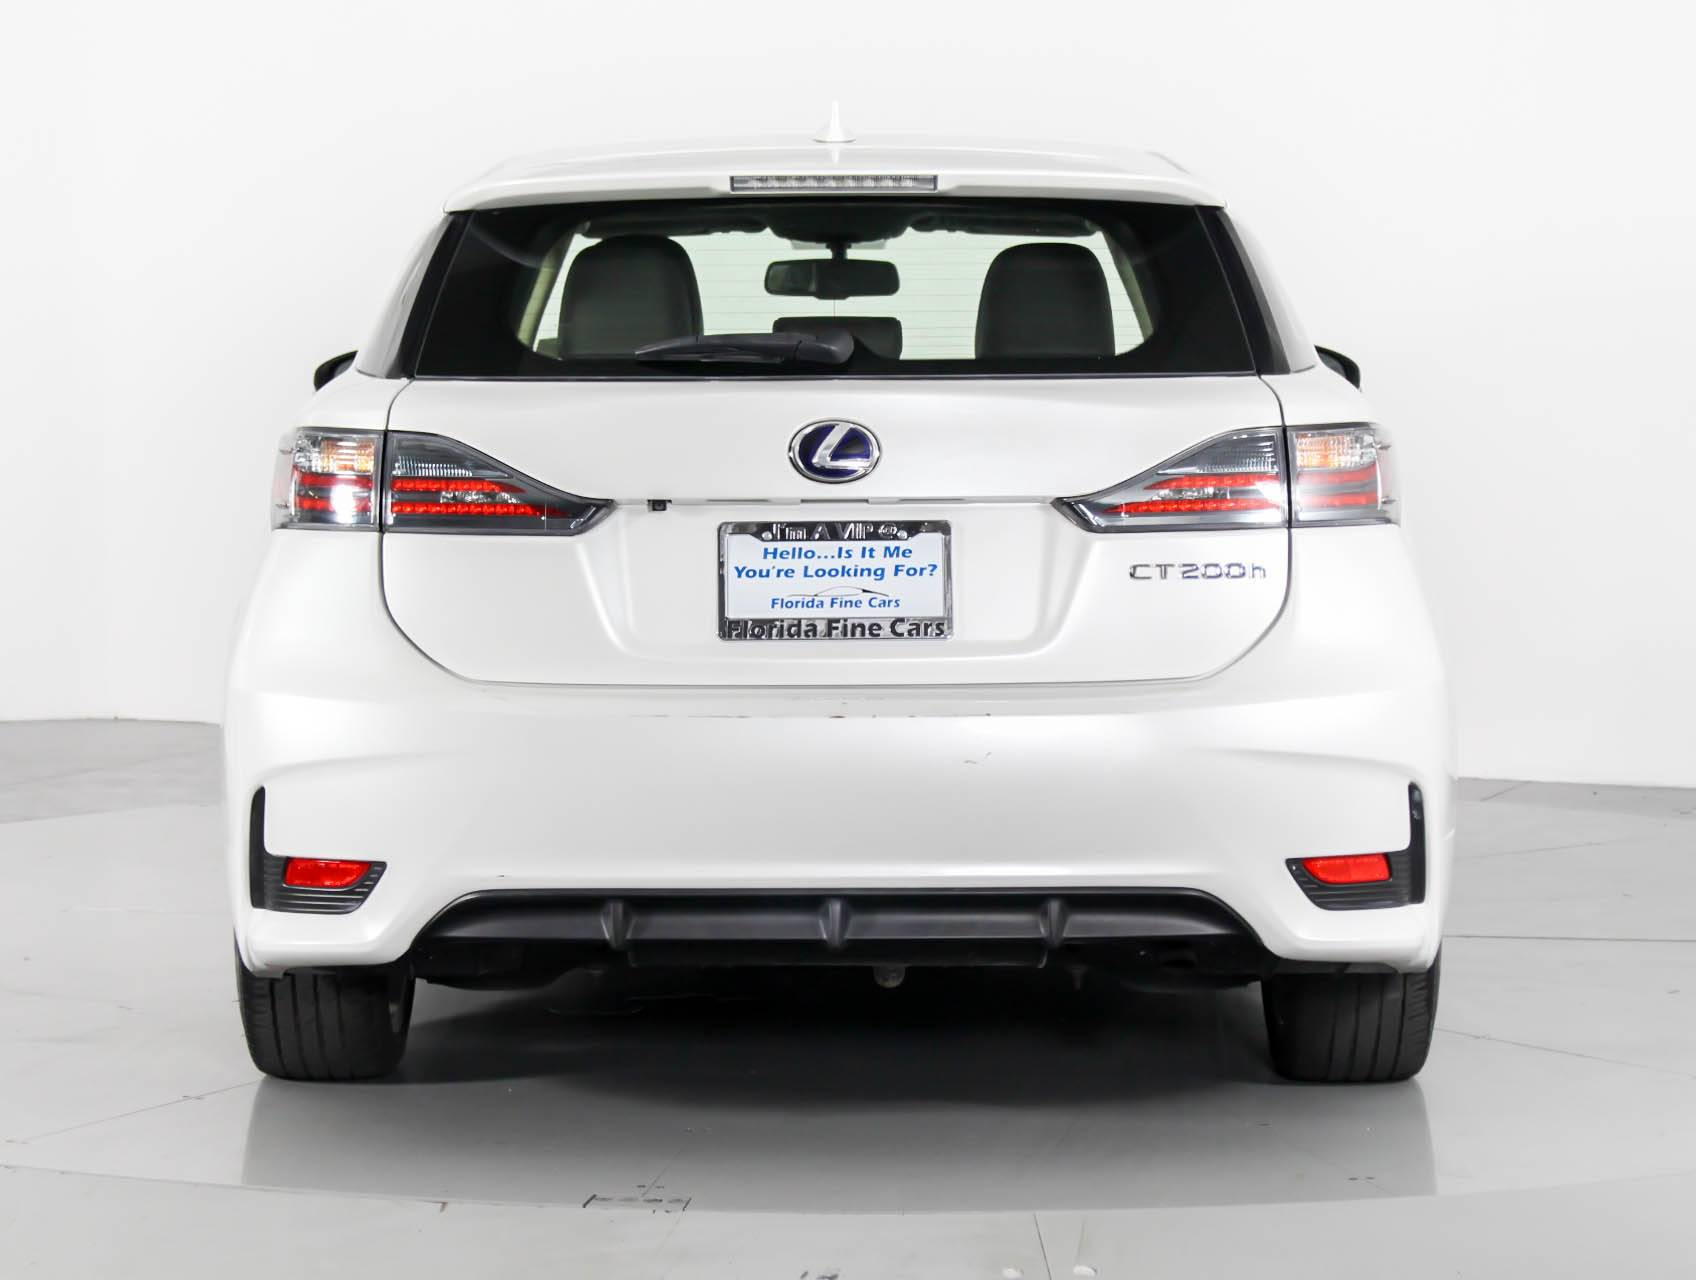 Used 2015 LEXUS CT 200H Hatchback for sale in HOLLYWOOD FL